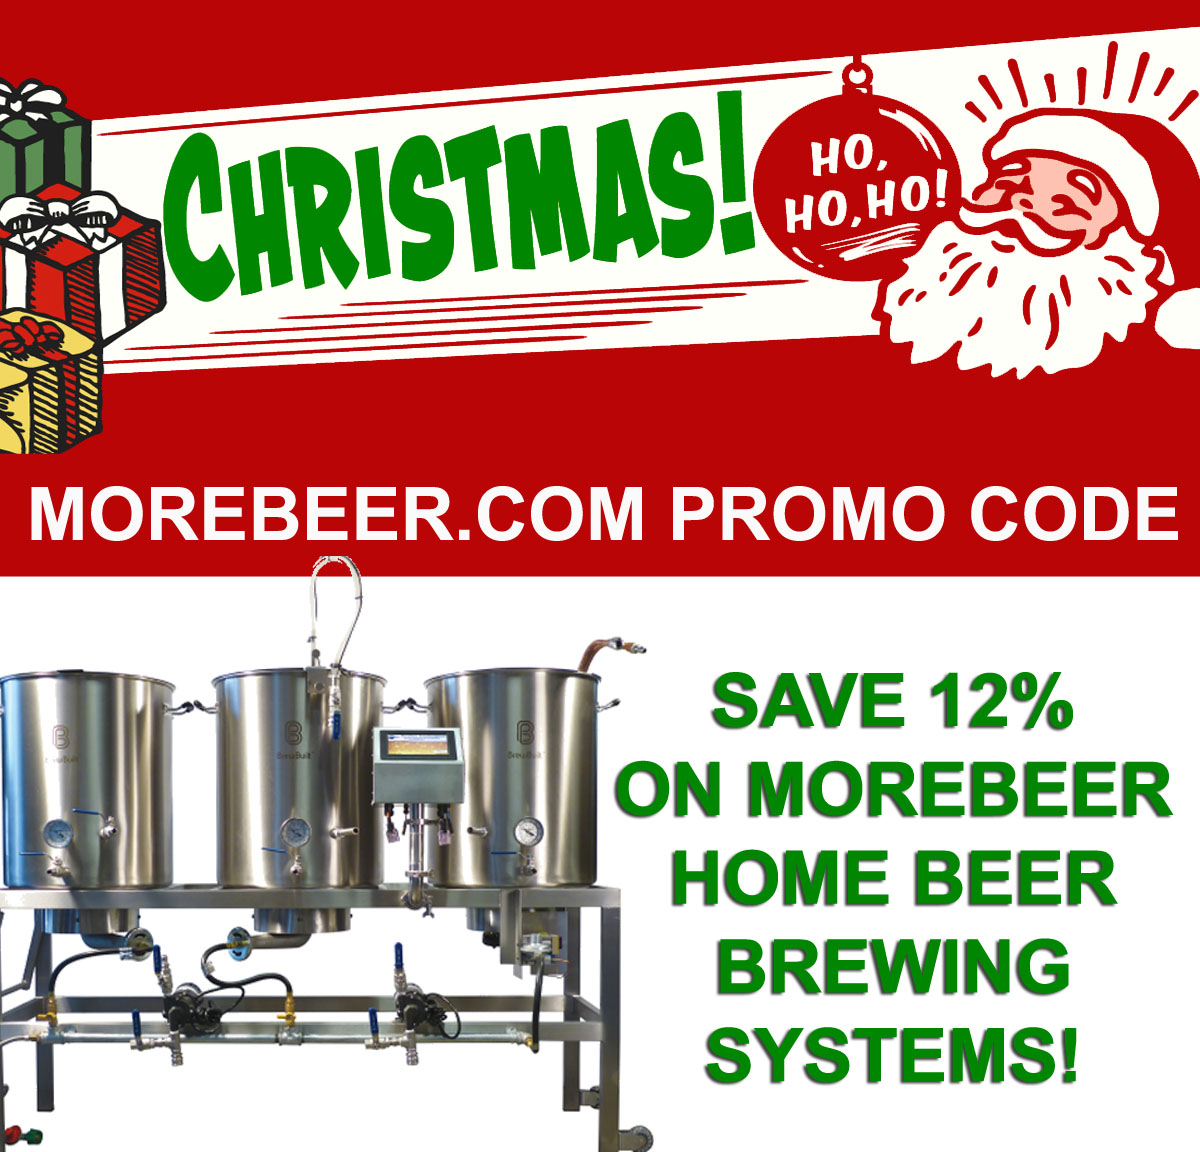 Coupon Code For Save 12% On More Beer Homebrewing Systems! Coupon Code